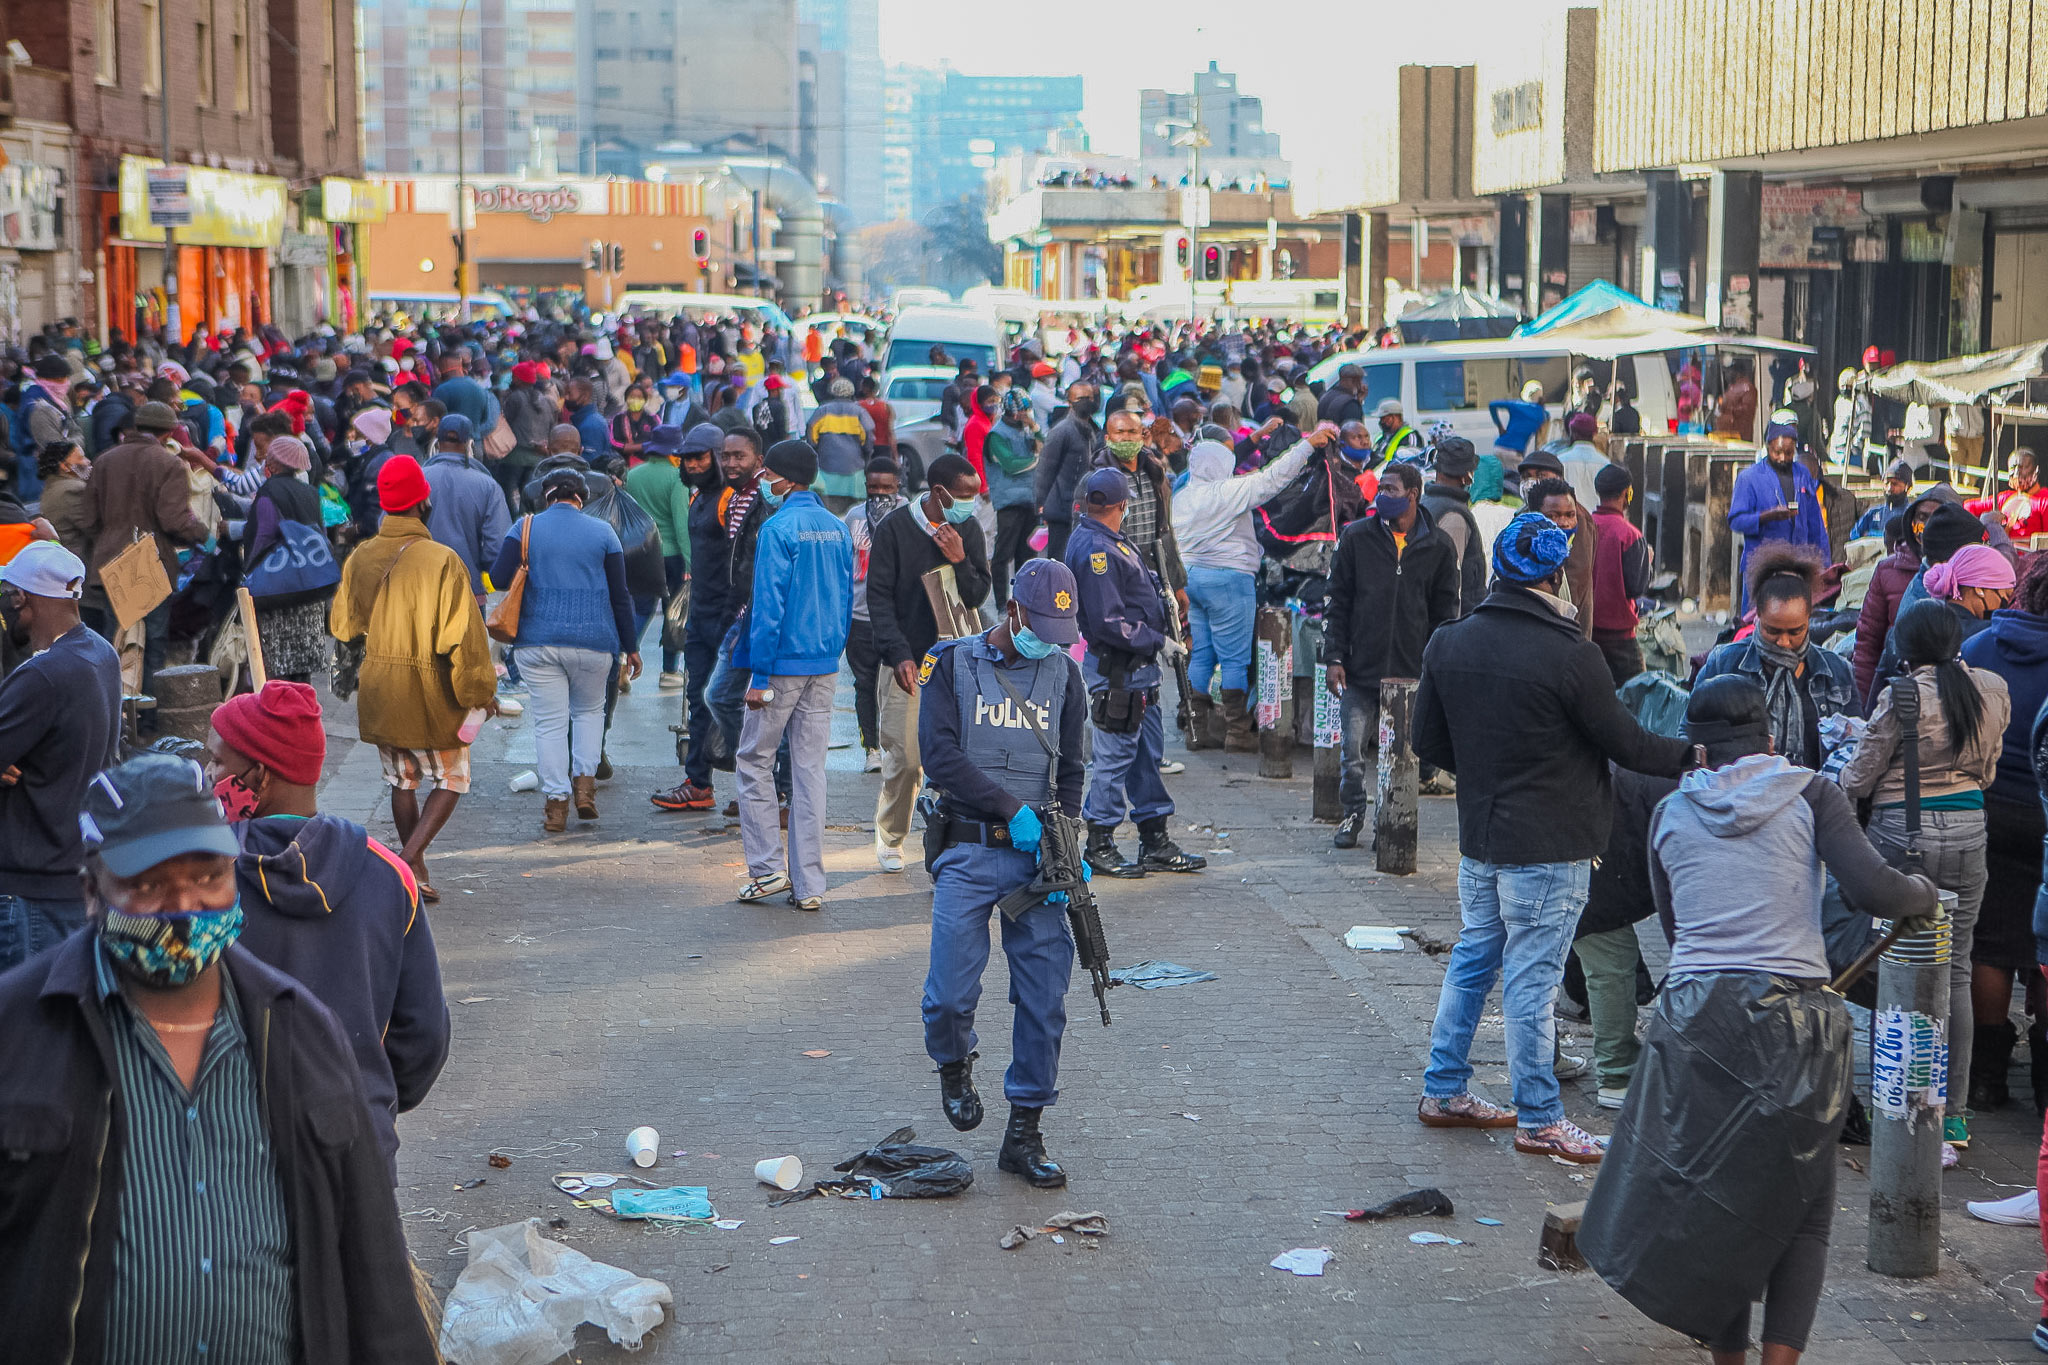 4 June 2020: Members of the South African Police Service monitor compliance with lockdown level three regulations in Johannesburg. (Photograph by Sharon Seretlo/ Gallo Images via Getty Images)